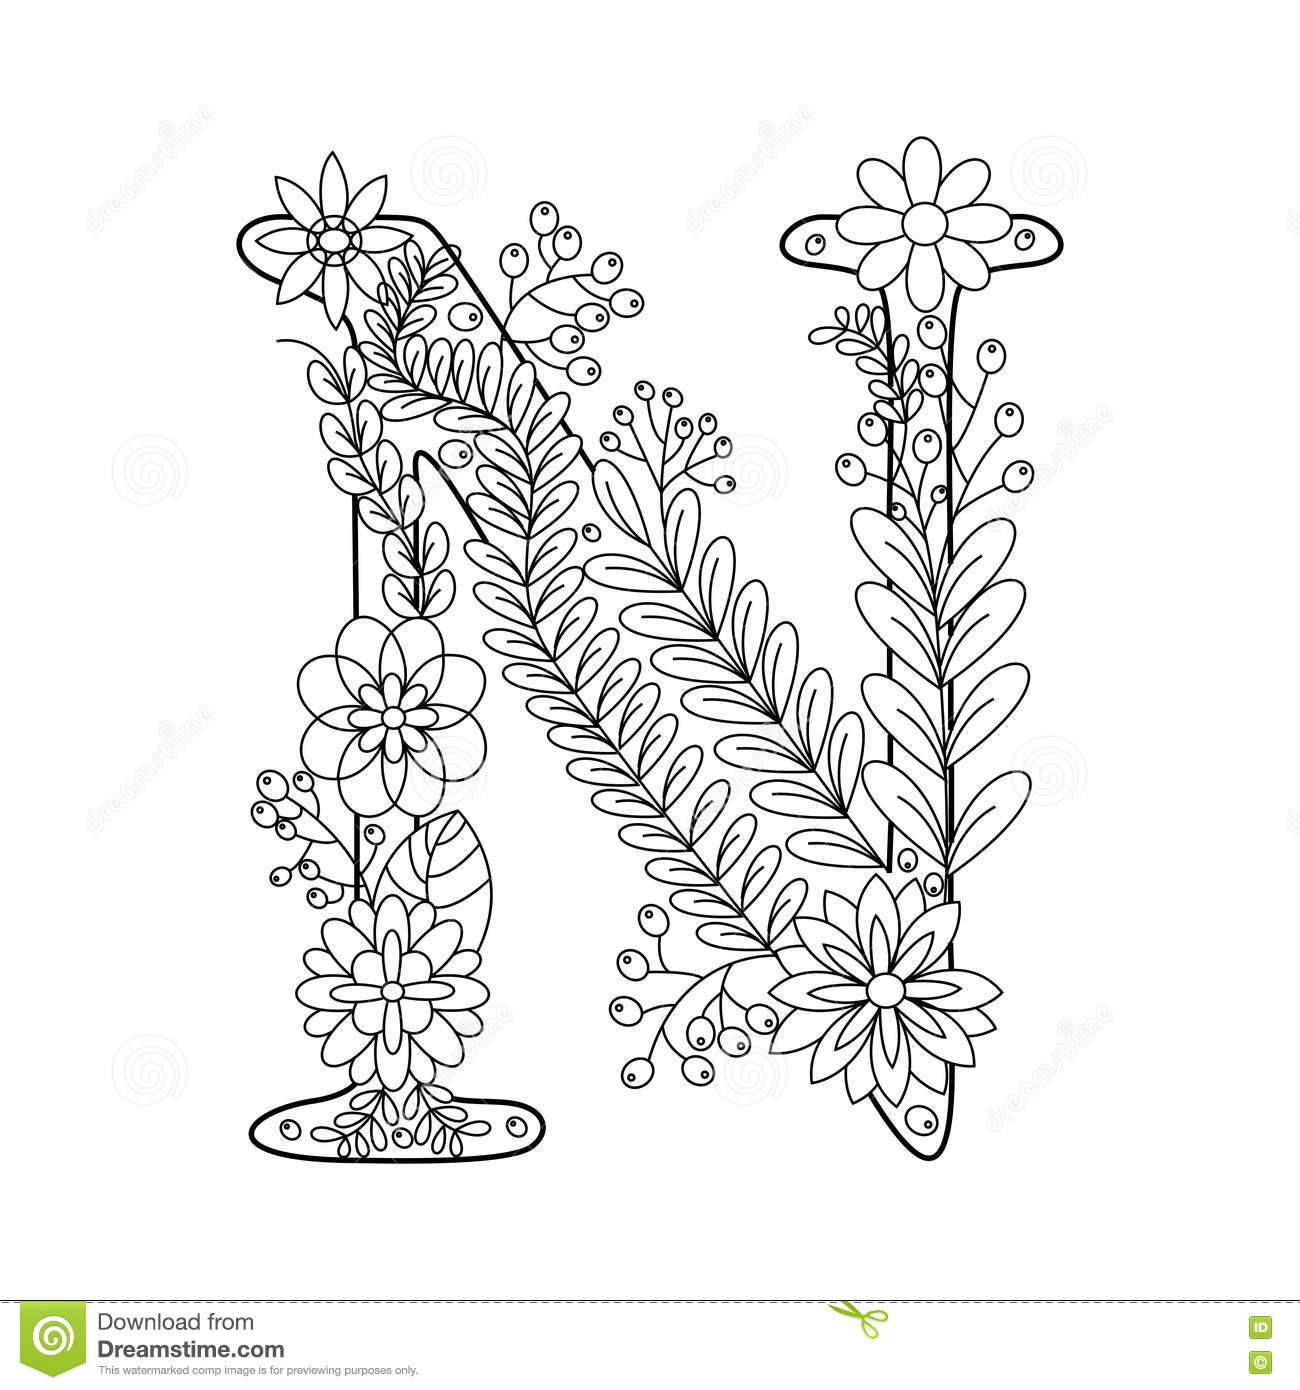 letter n coloring pages for adults letter n for coloring vector decorative zentangle object coloring letter for adults pages n